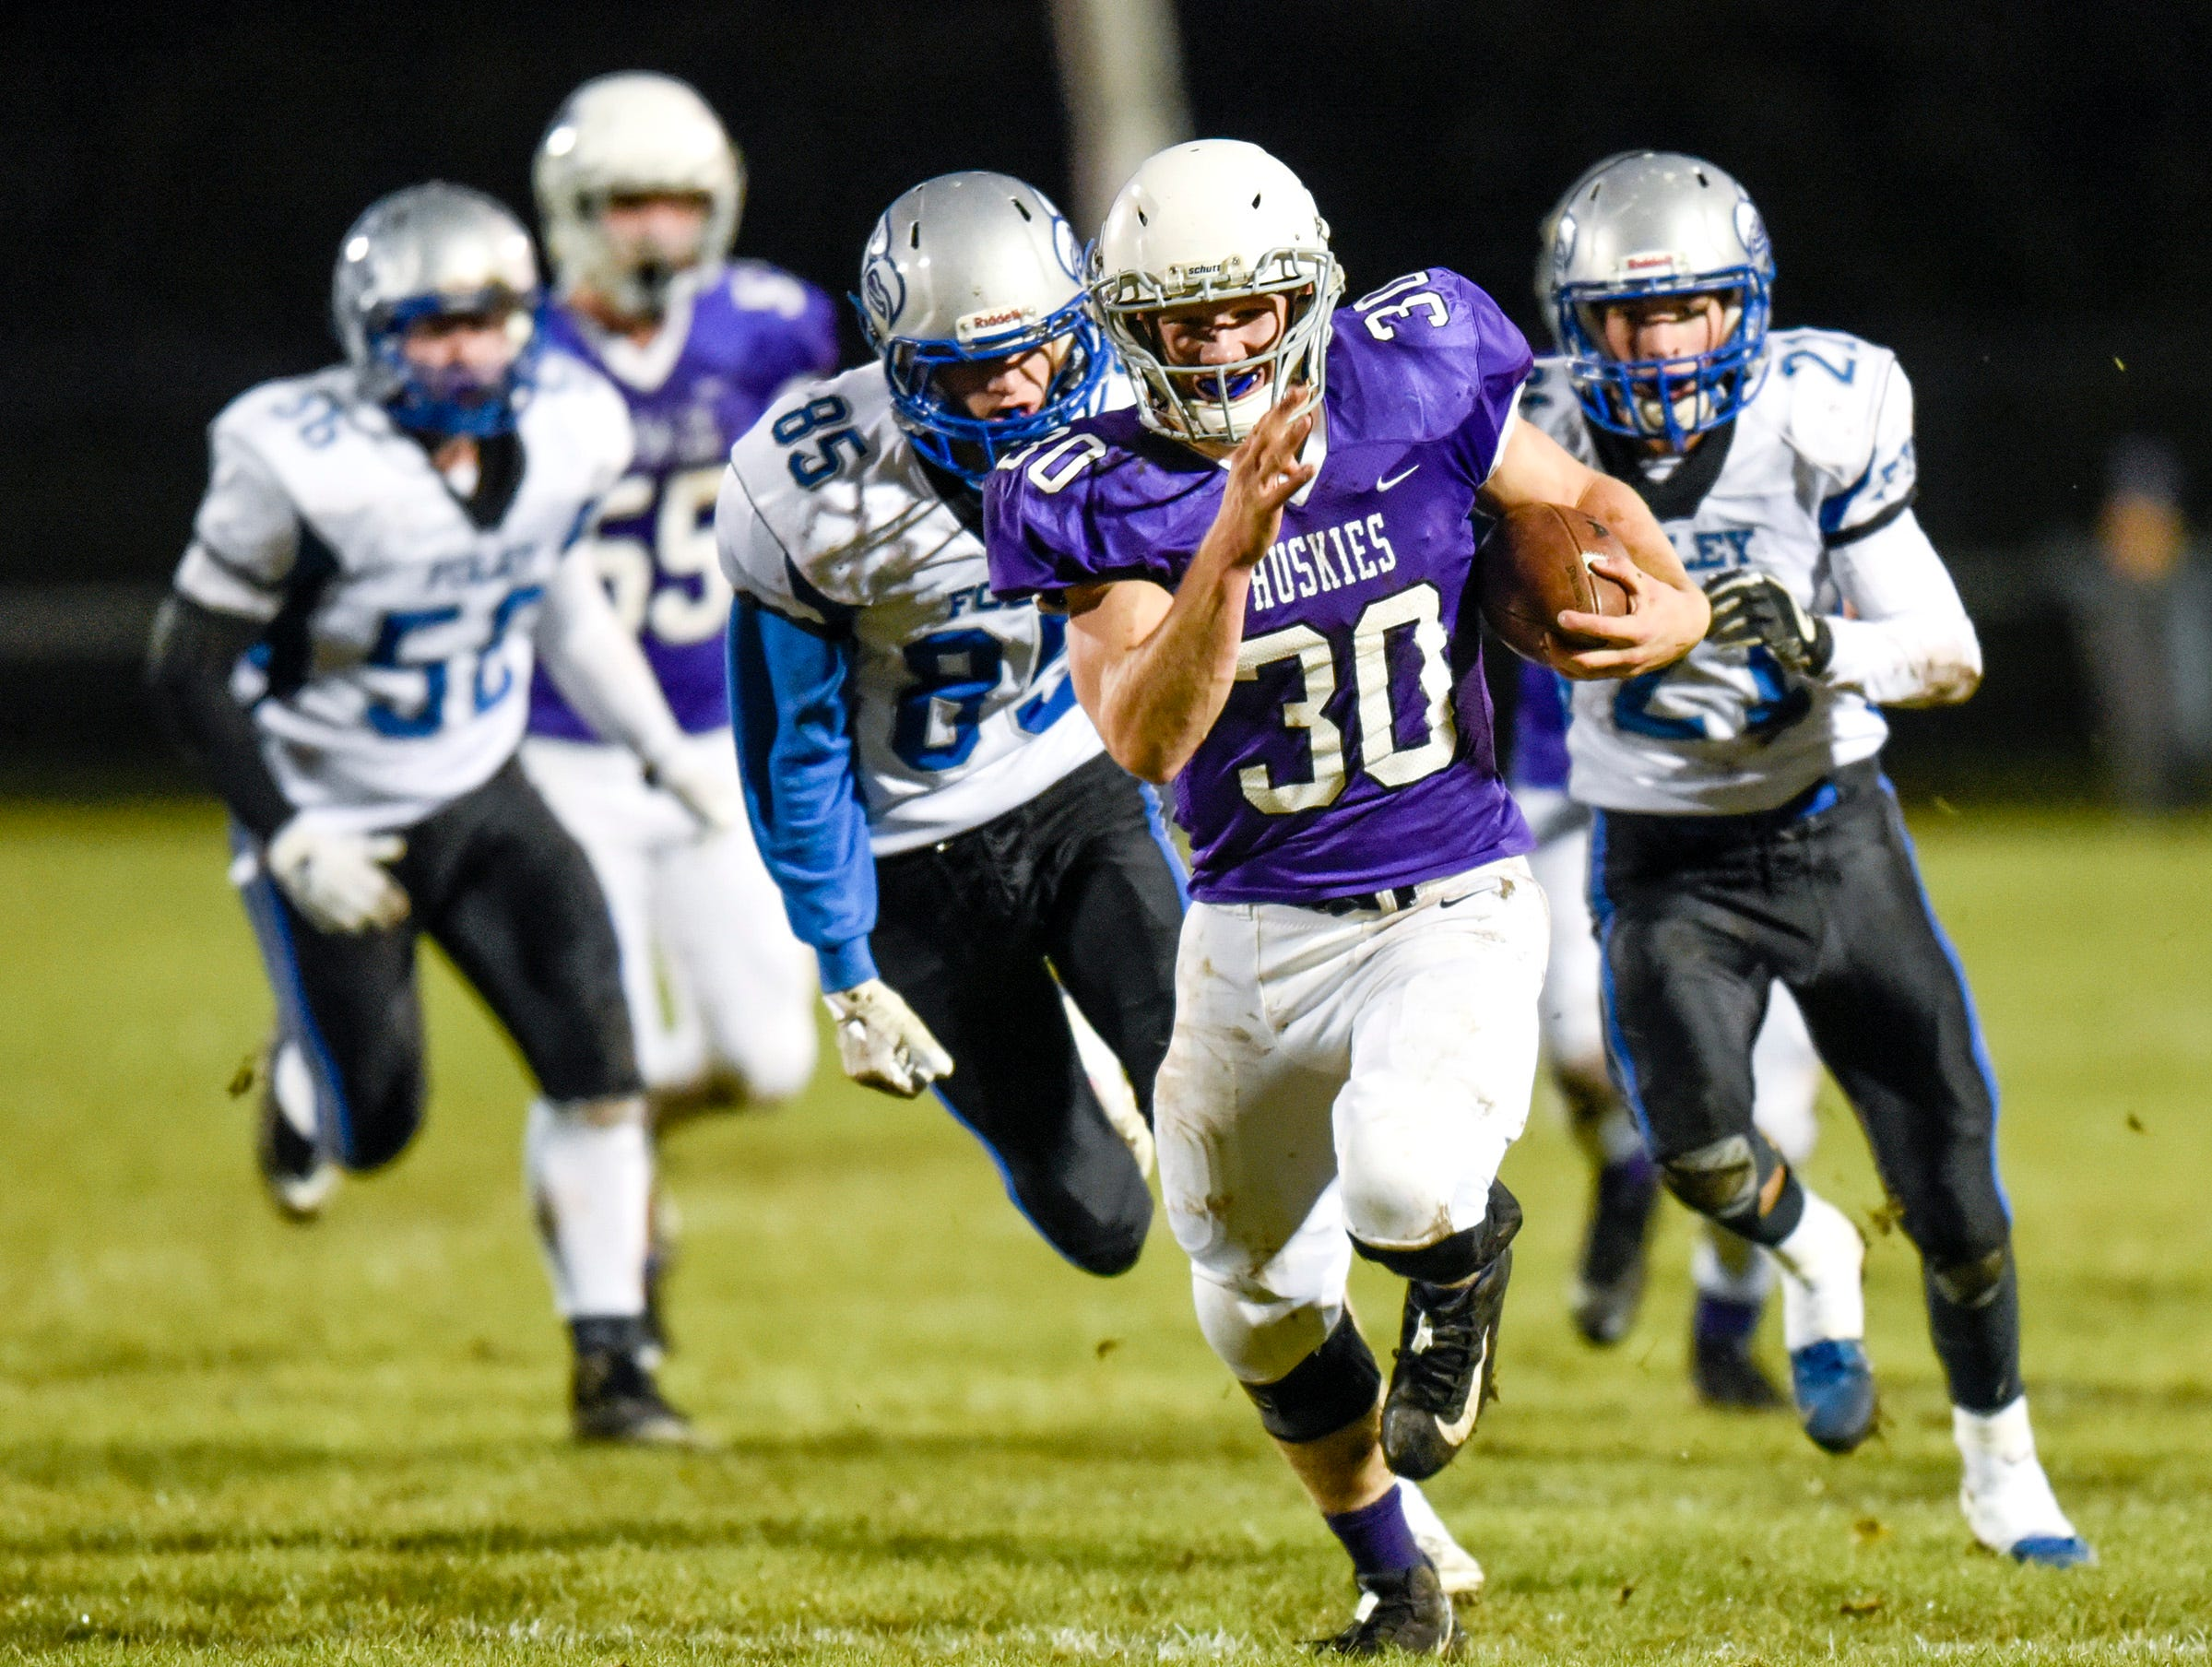 Albany's Gabe Zierden runs for a first down against Foley during the first half Friday, Oct. 12, in Albany.